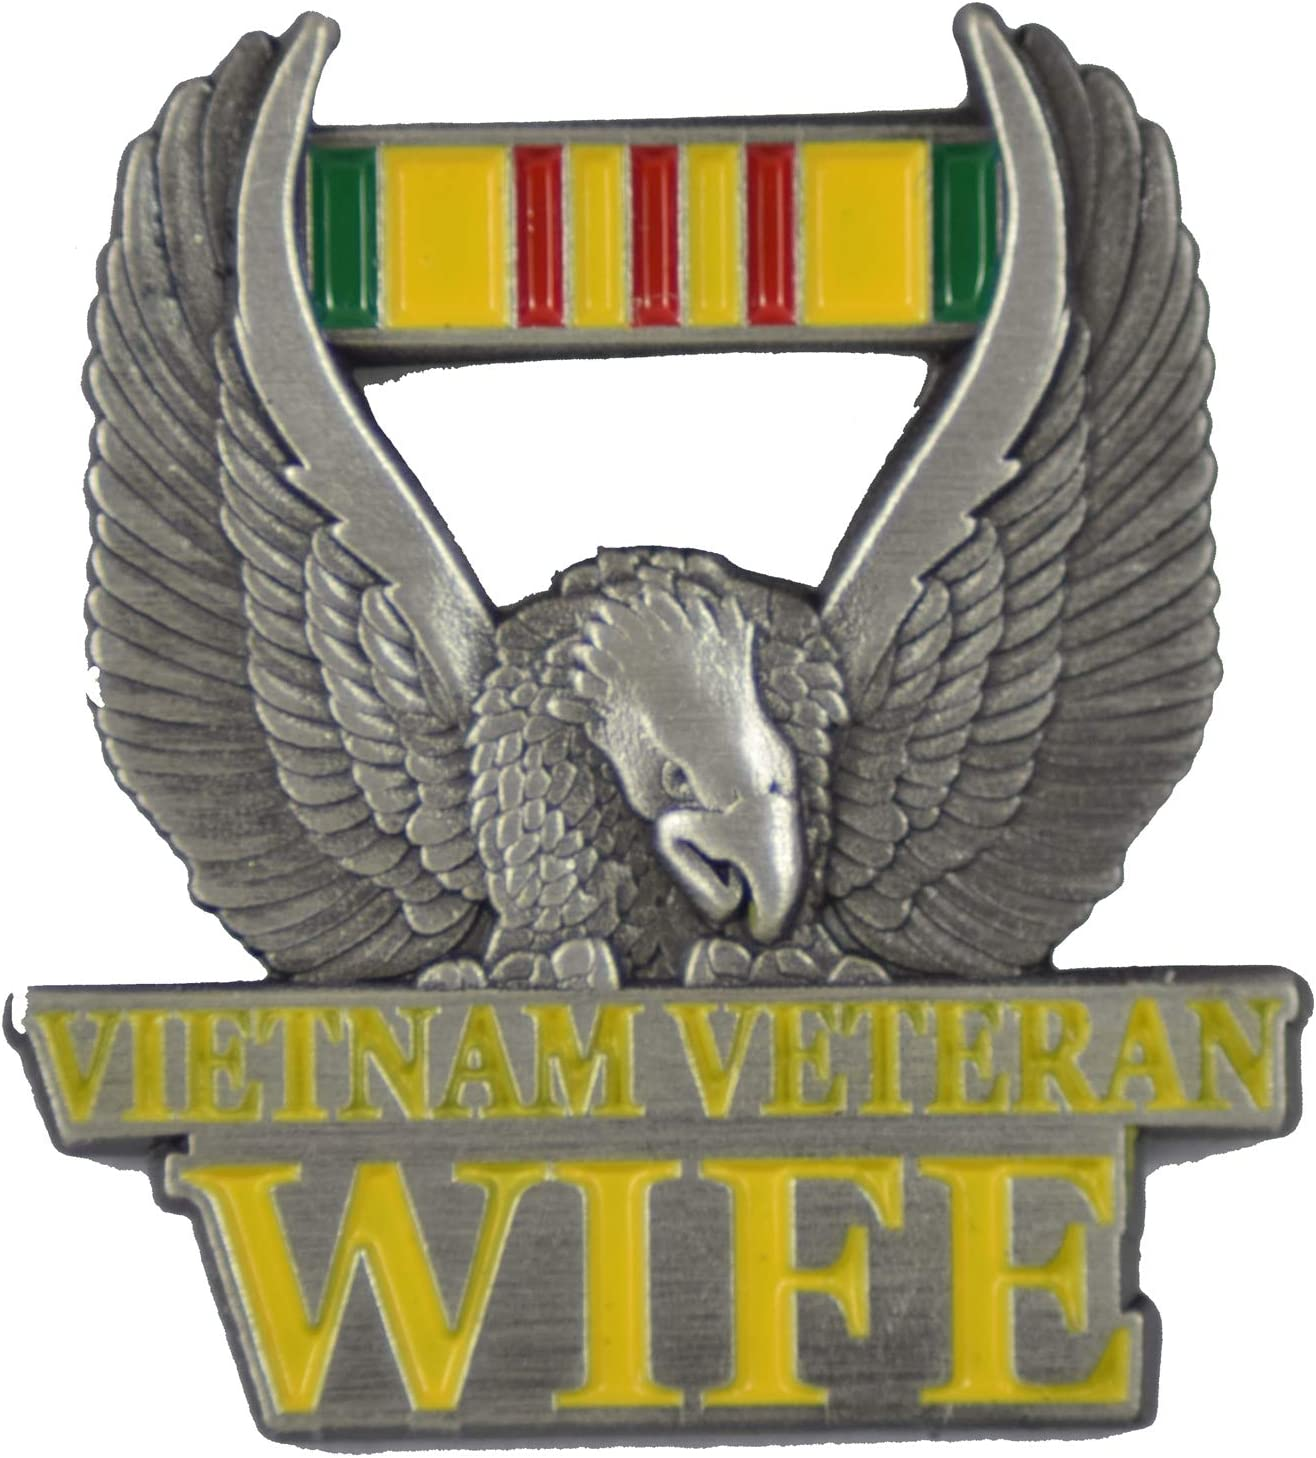 Vietman Vet's Wife LAPEL PIN OR OWNED - VETERAN Oklahoma City Mall Classic BUSINESS HAT